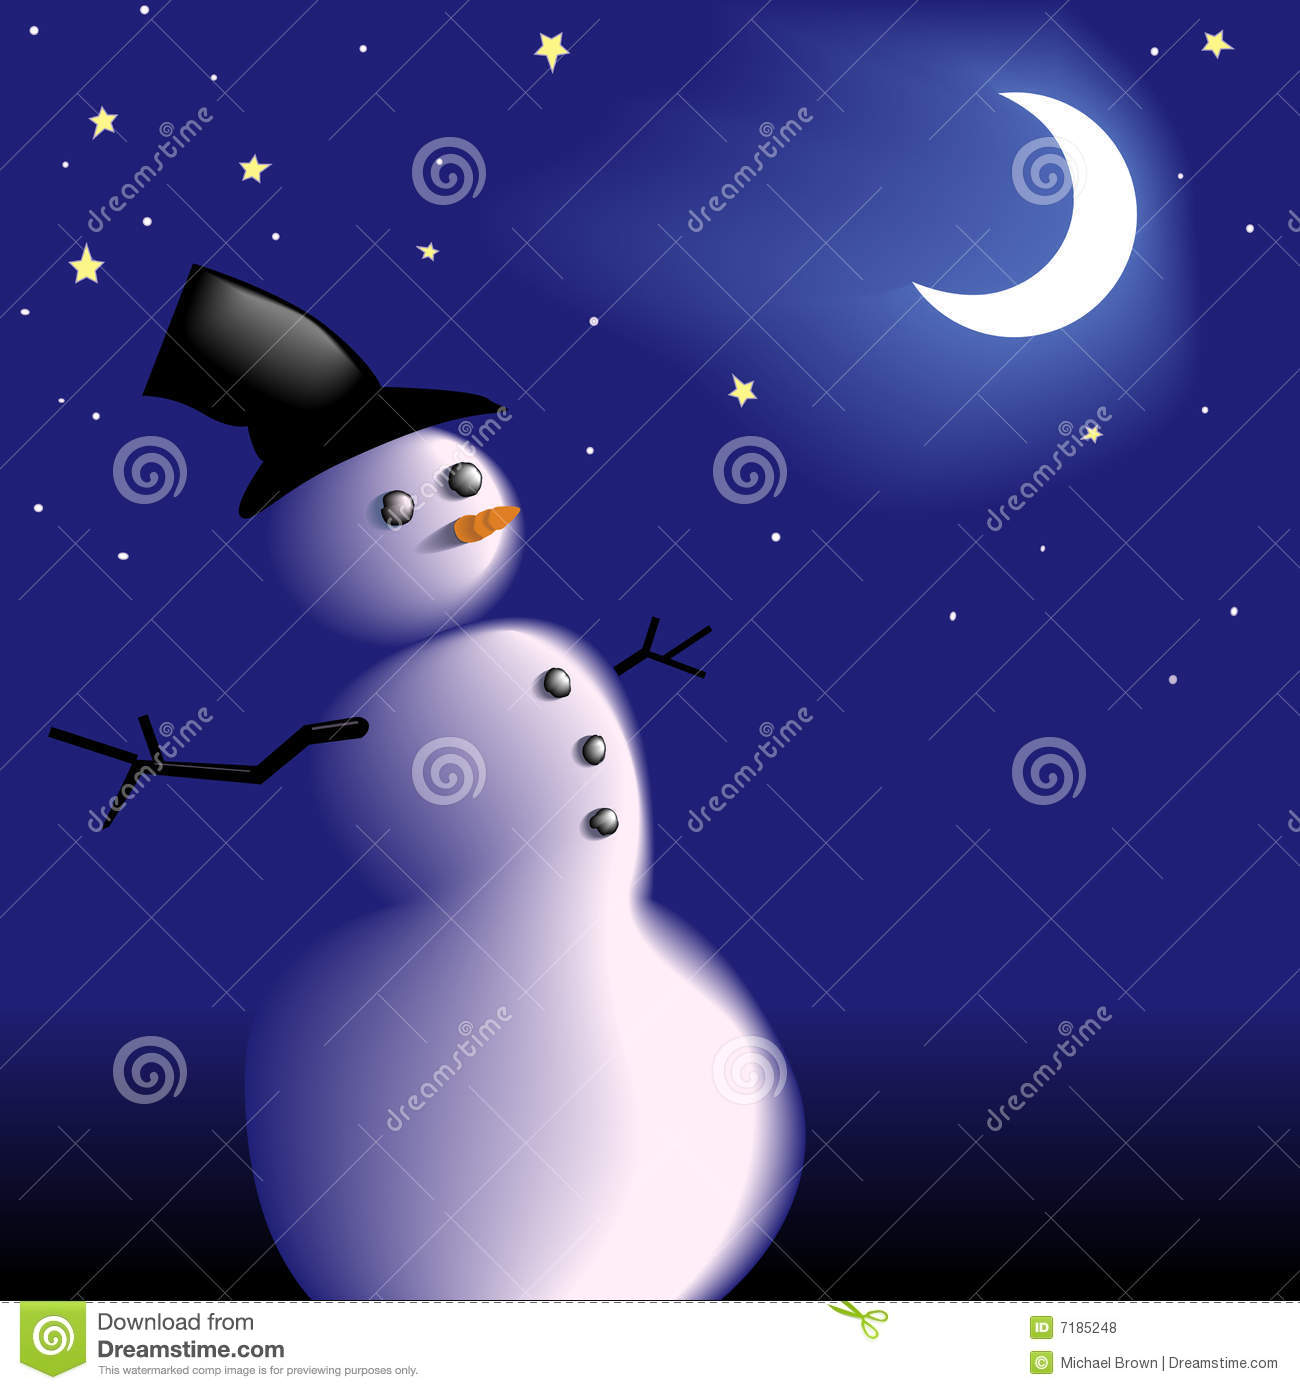 Royalty free stock photos snowman under frosty cold clear winter